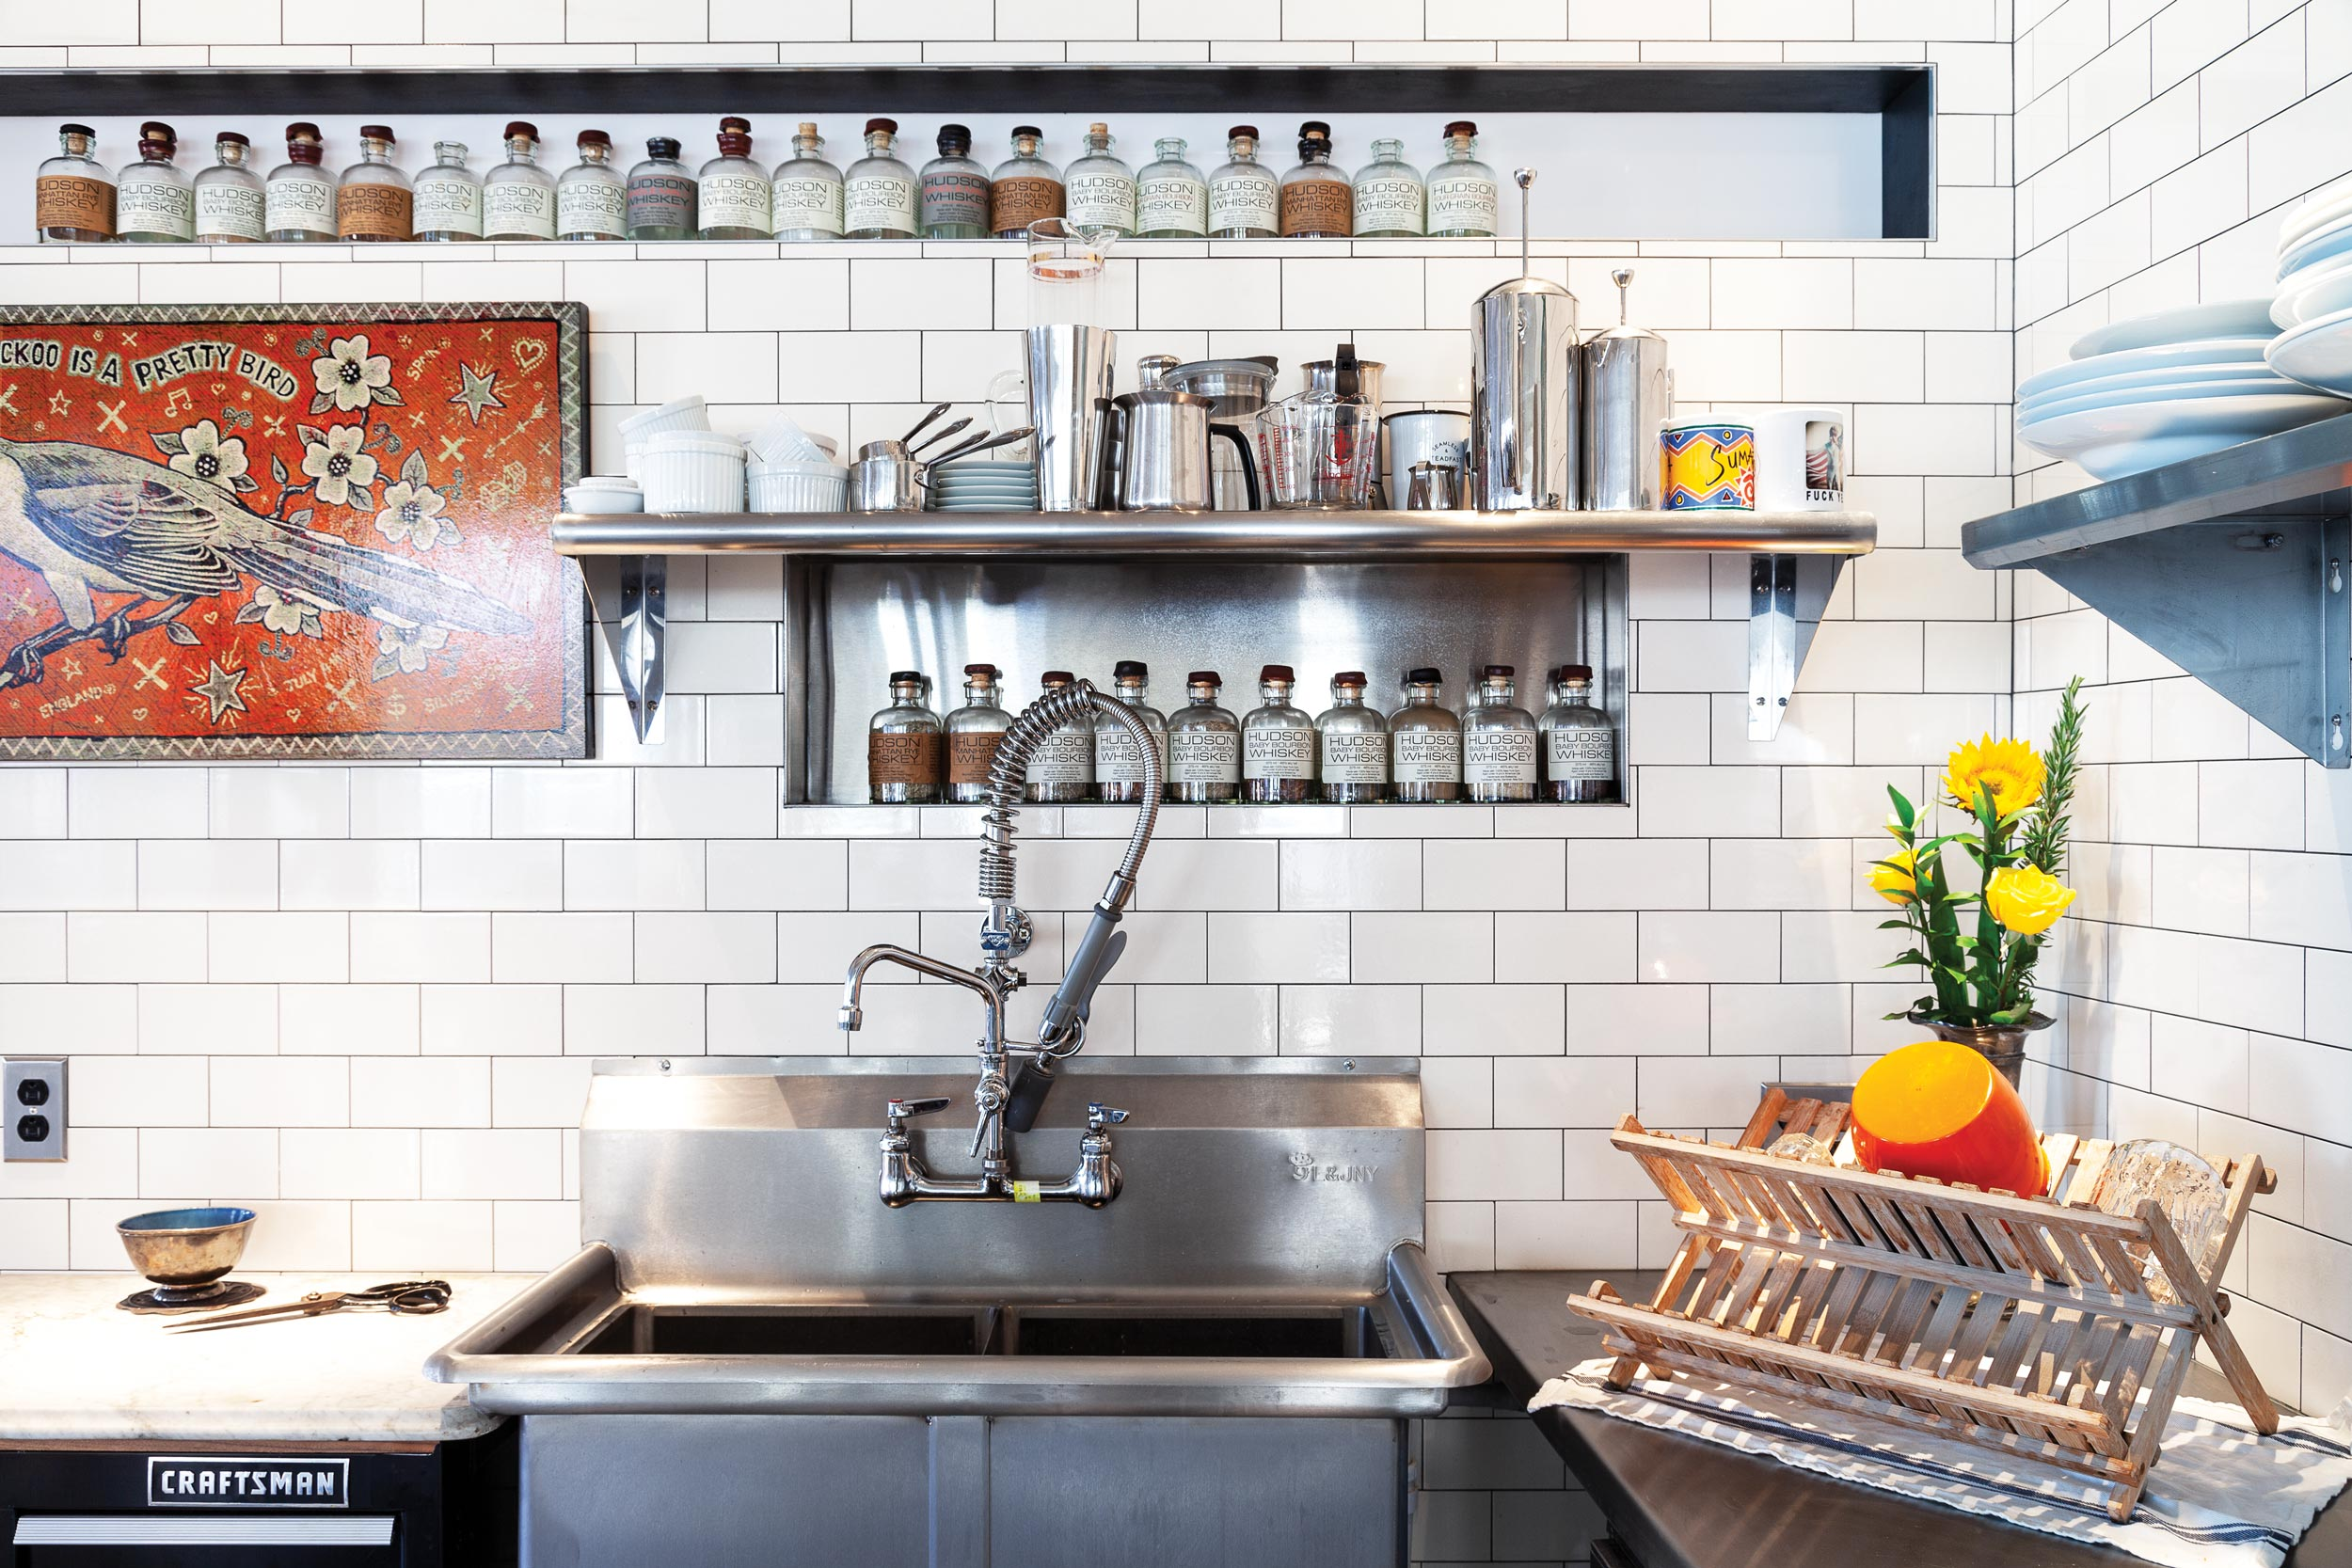 Keon didn't want upper cabinetry in his kitchen, but he did want his spices stored in former bourbon bottles on narrow shelves or in nooks. The bird painting is by musician Jon Langford.